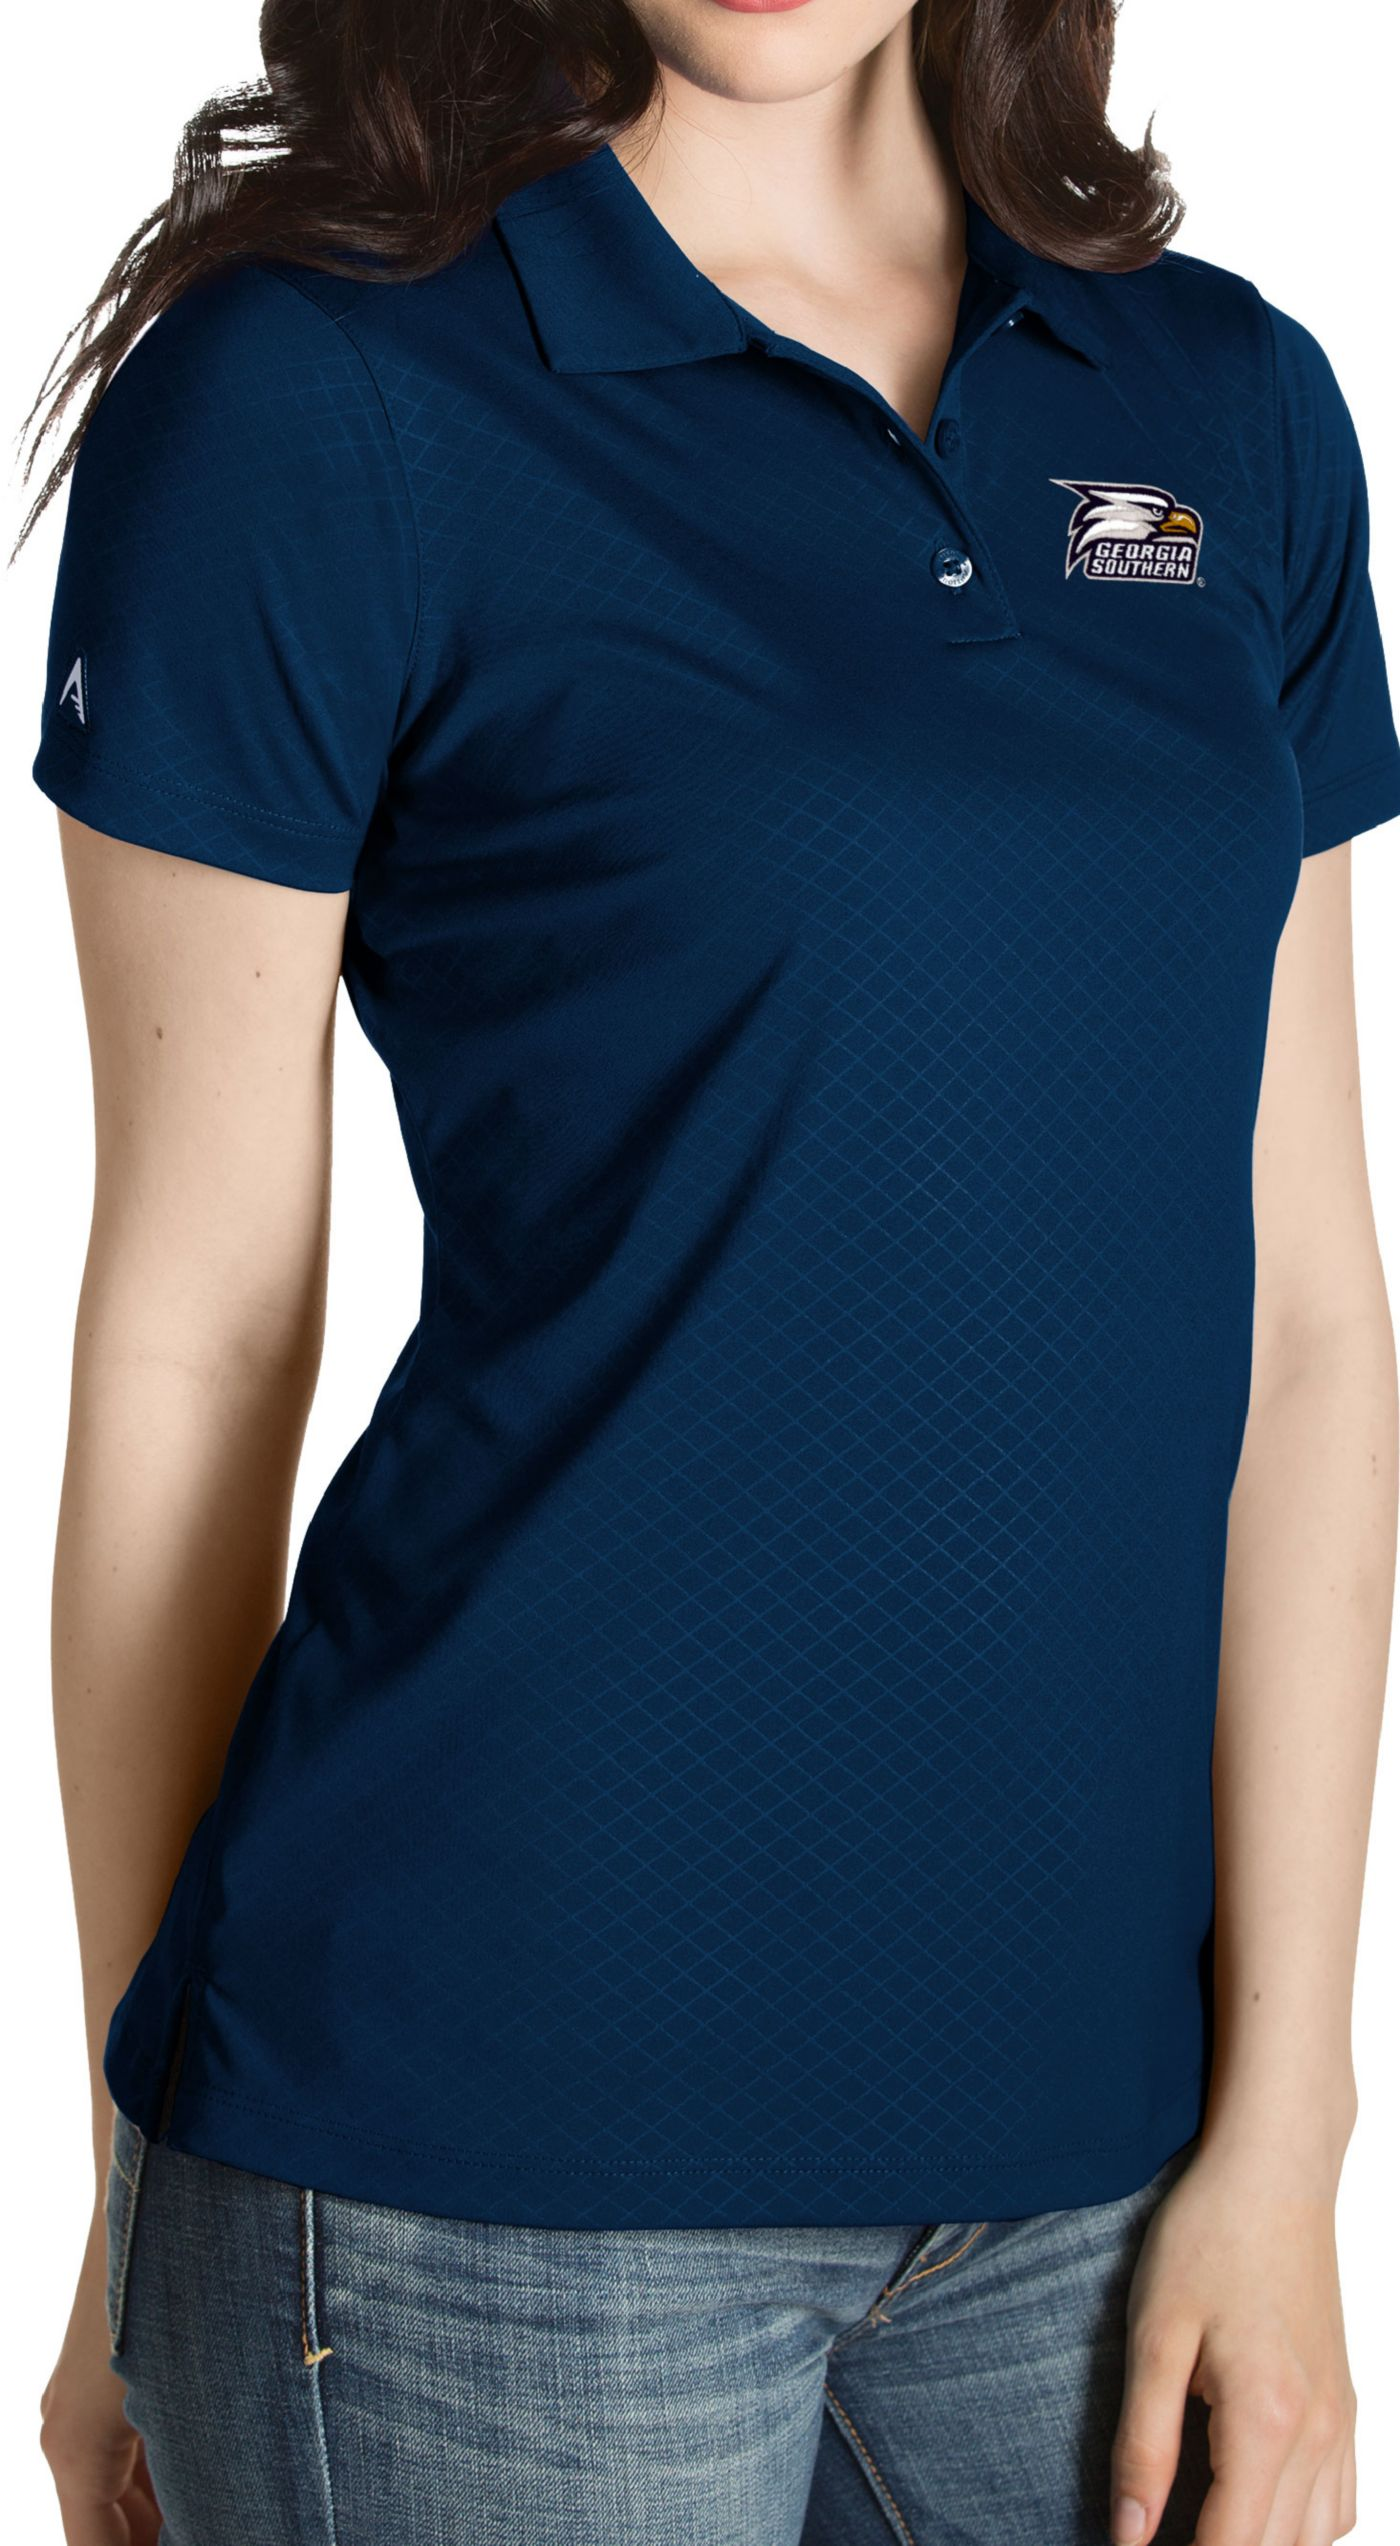 Antigua Women's Georgia Southern Eagles Navy Inspire Performance Polo